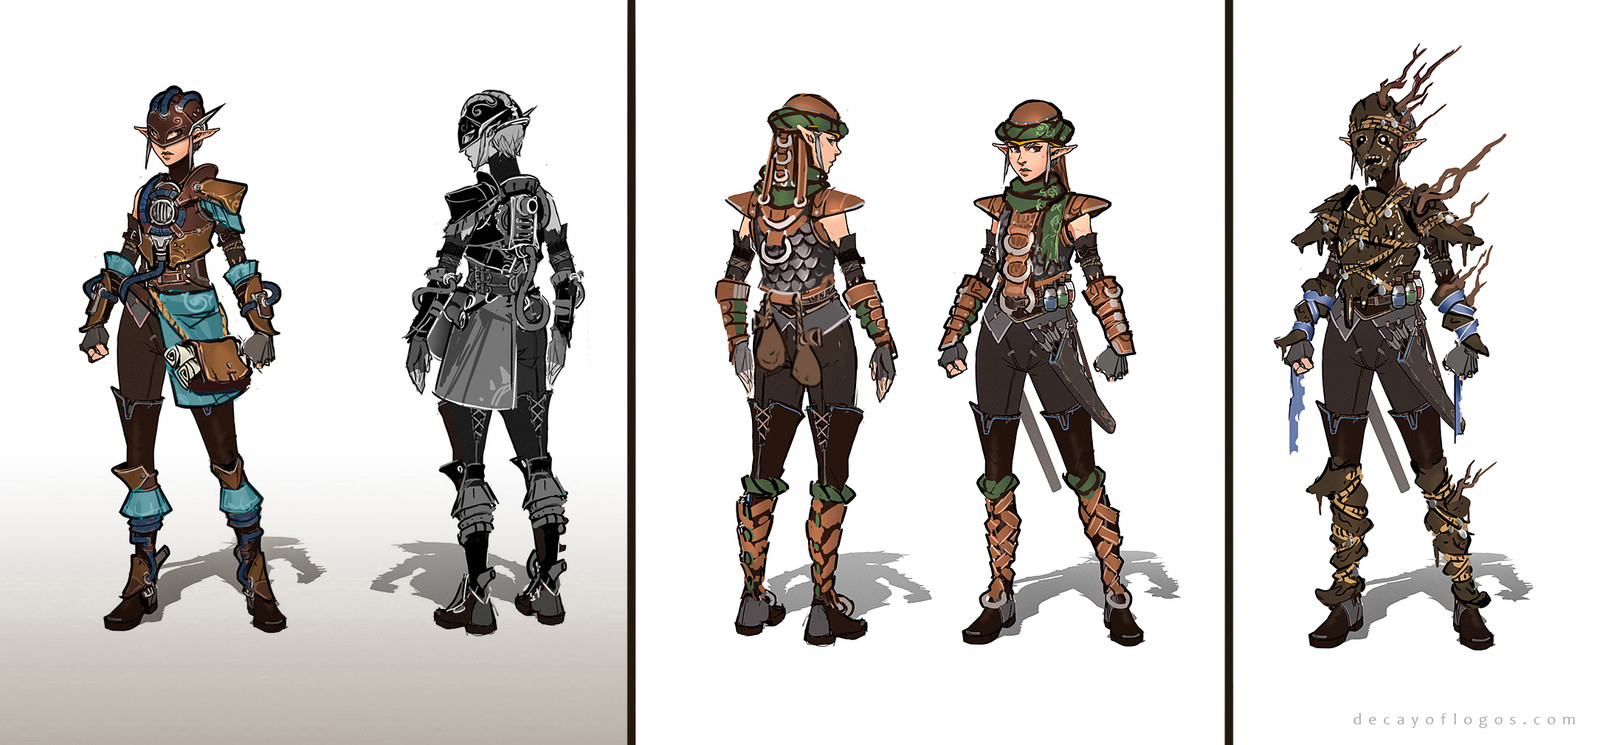 Decay of Logos - Armor Sets